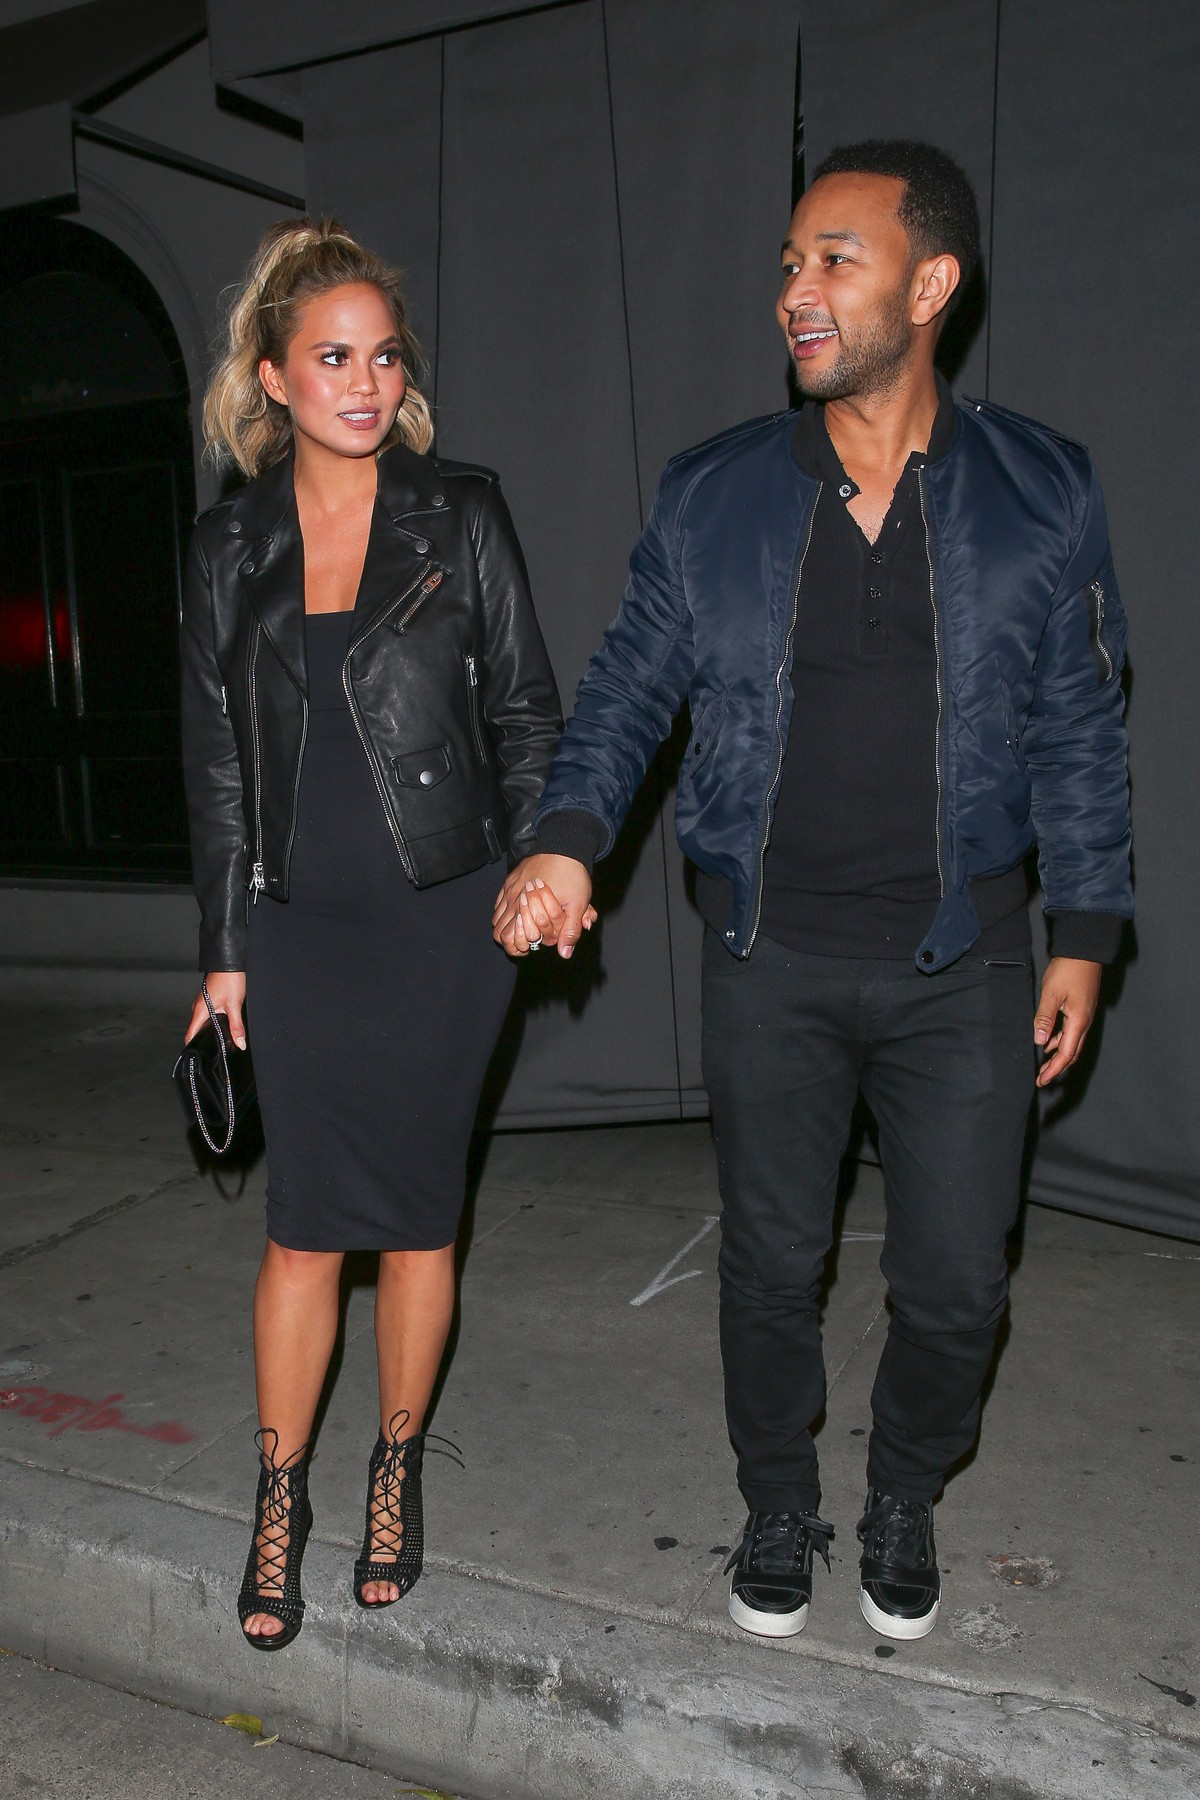 West Hollywood, CA - Grammy winner singer John Legend and his pretty pregnant wife Chrissy Teigen hold hands as they wrap up dinner at Craig's Restaurant.        December 15, 2015,Image: 269292770, License: Rights-managed, Restrictions: NO Brazil,NO Brazil, Model Release: no, Credit line: AKM Images / Backgrid USA / Profimedia